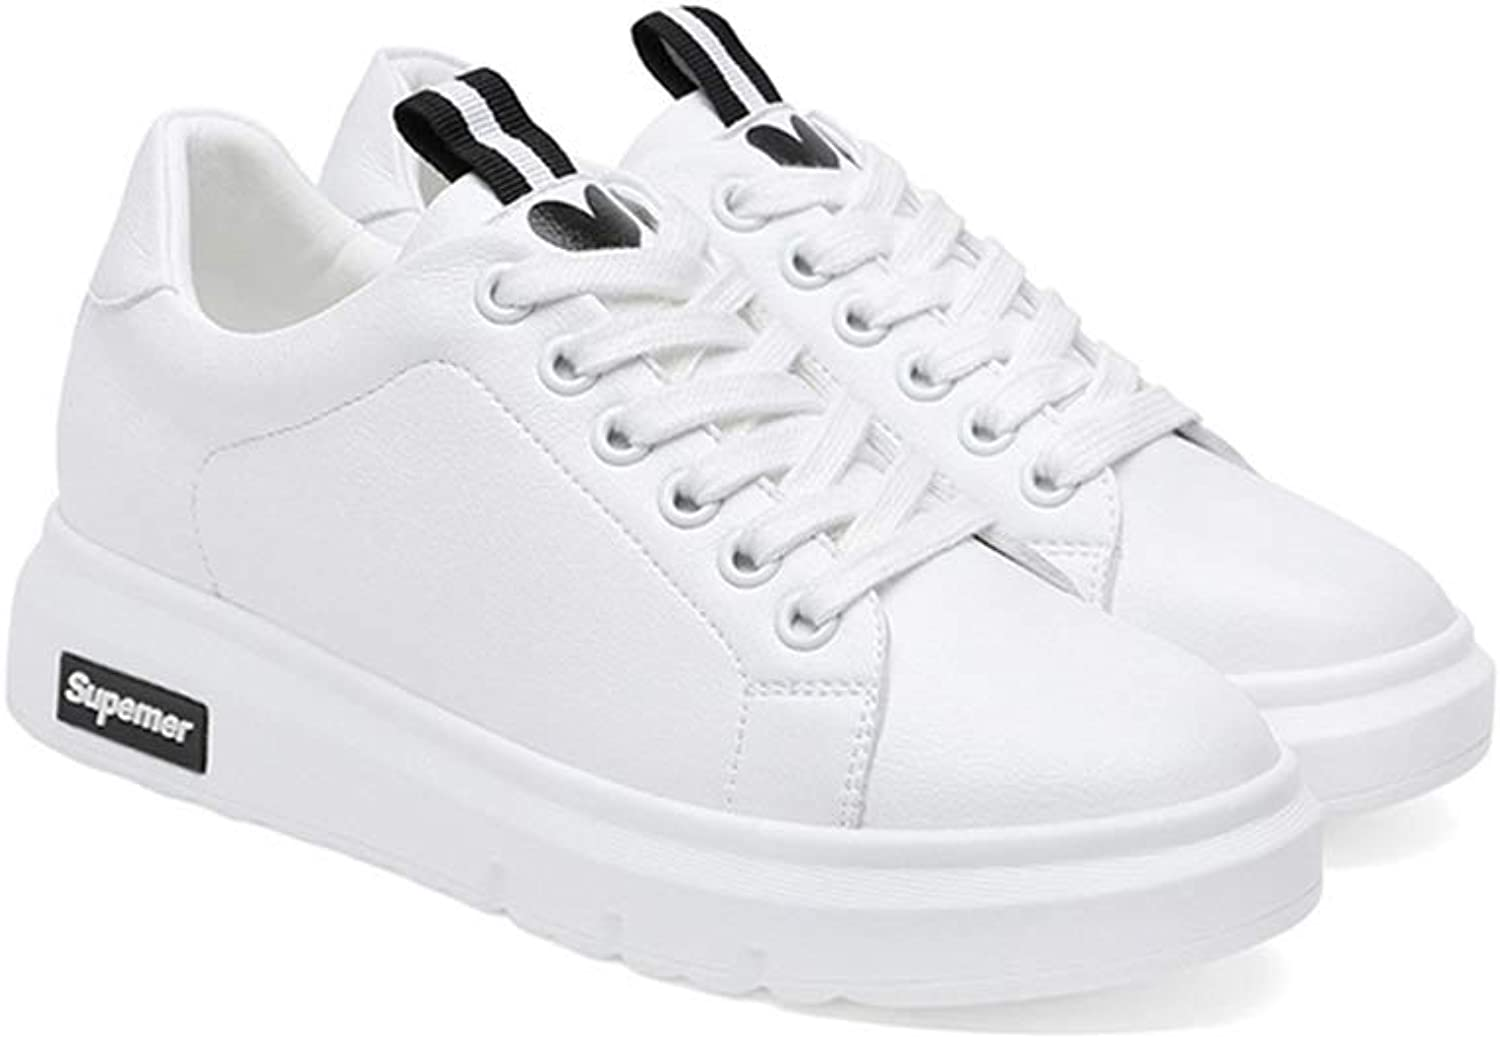 WANGFANG Sandals White shoes, Spring and Summer Casual Versatile Sneakers Low Top Fashion Sneakers Lace-up Sneaker for Women (color   Black, Size   US5 EU36 UK3 MX2.5 CN36)